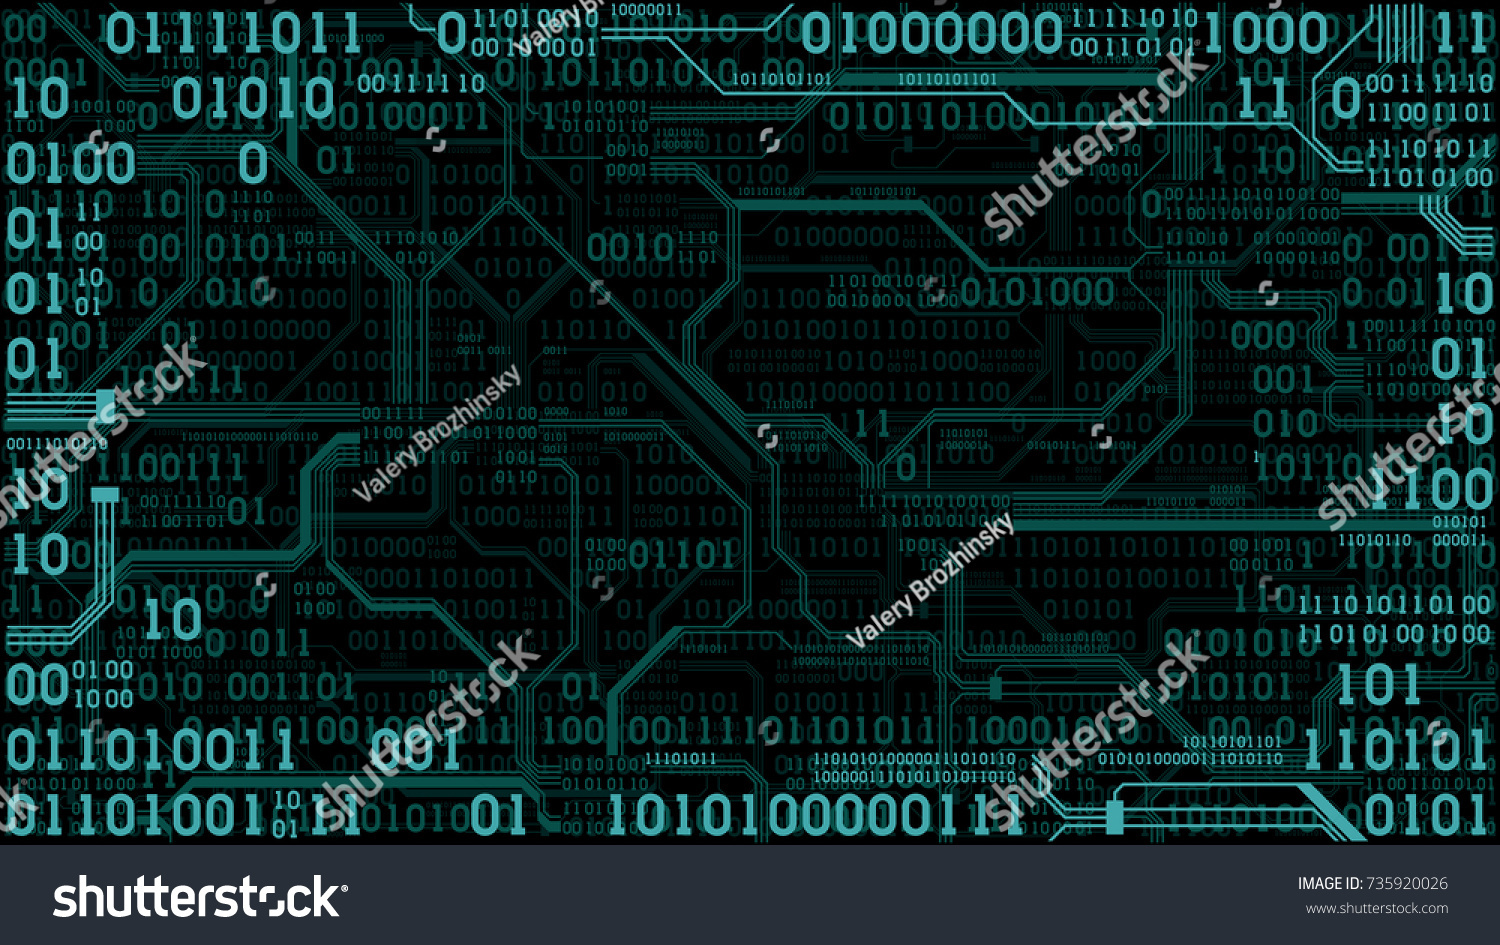 Abstract Futuristic Electronic Circuit Board Binary Stock Vector Abstact Background With And Code Images Computer Digital Technology Frame